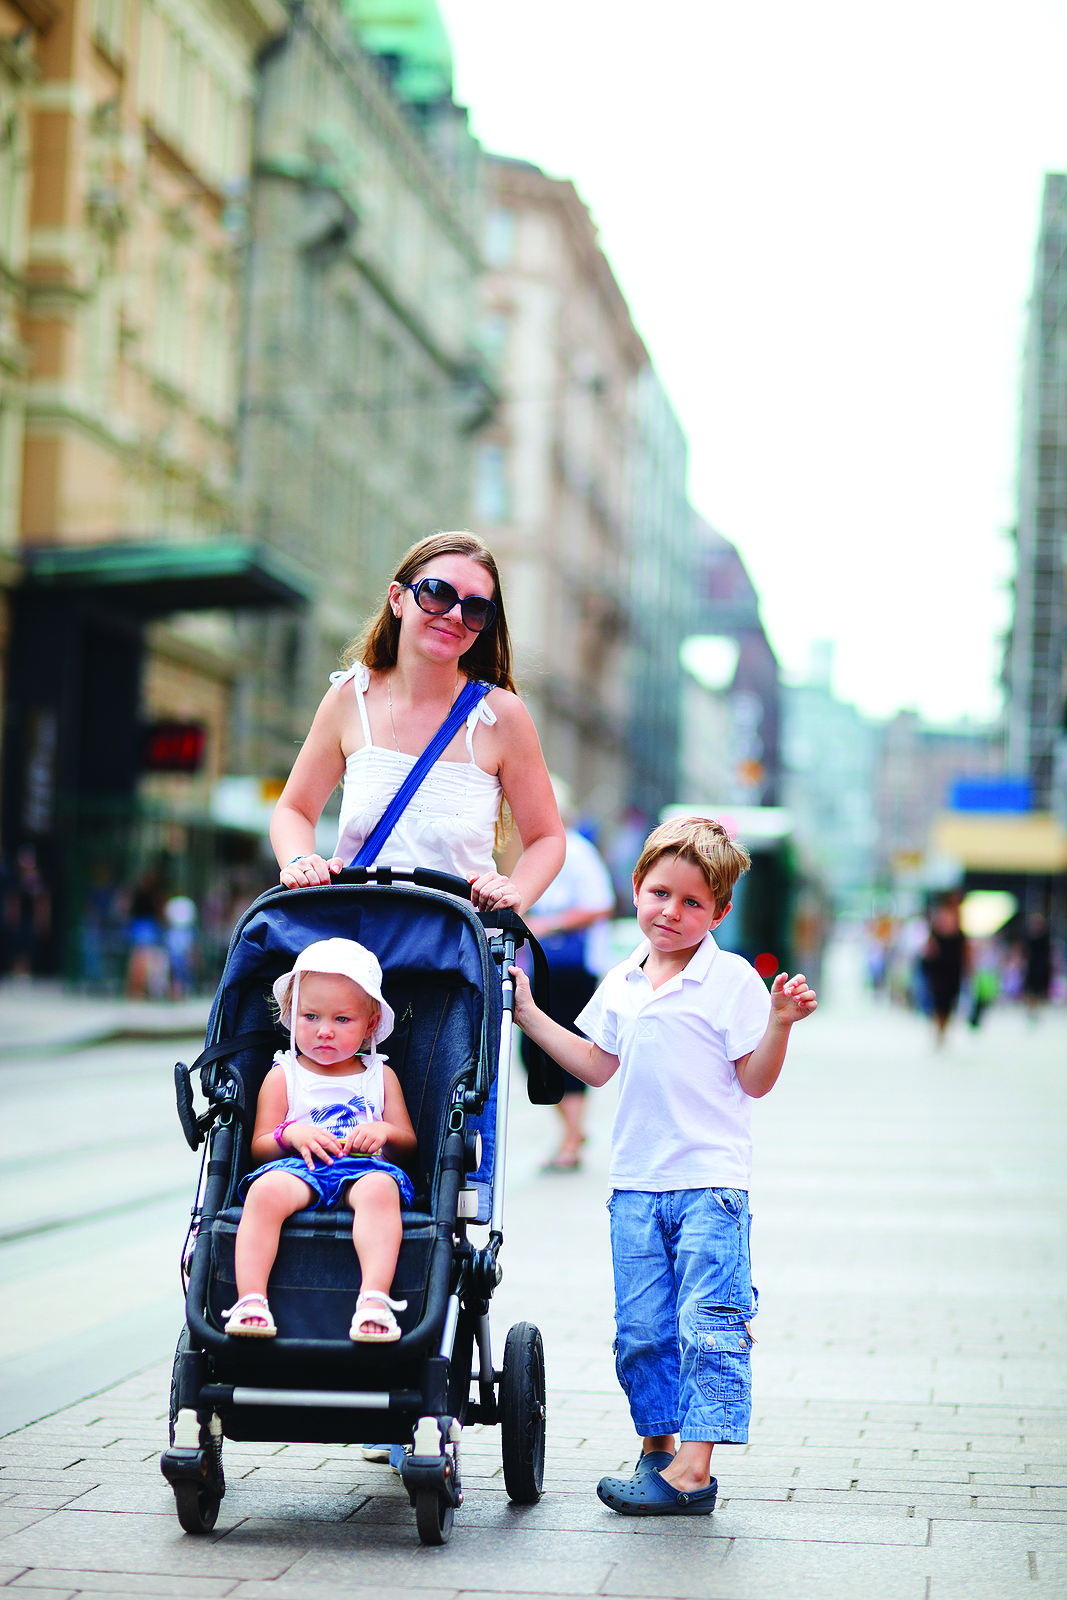 bigstock_Mother_And_Two_Kids_Walking_In_8684188.jpg